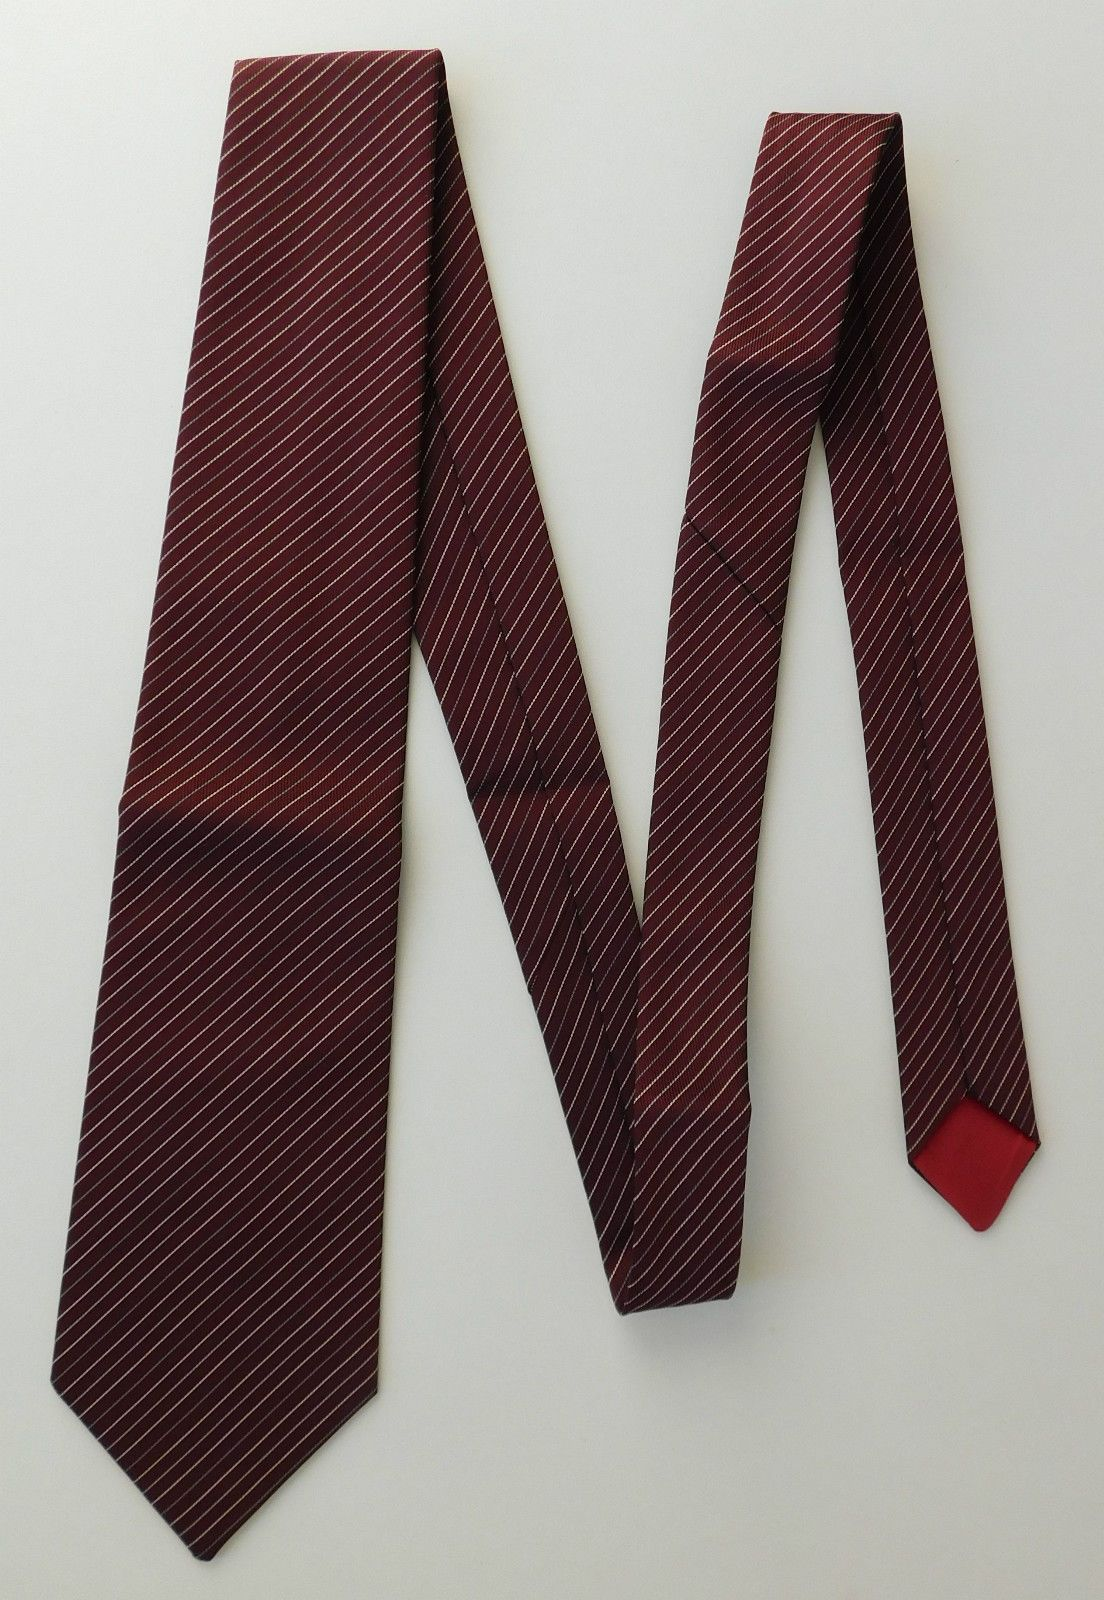 maroon pin striped tie sober business clothes bhs